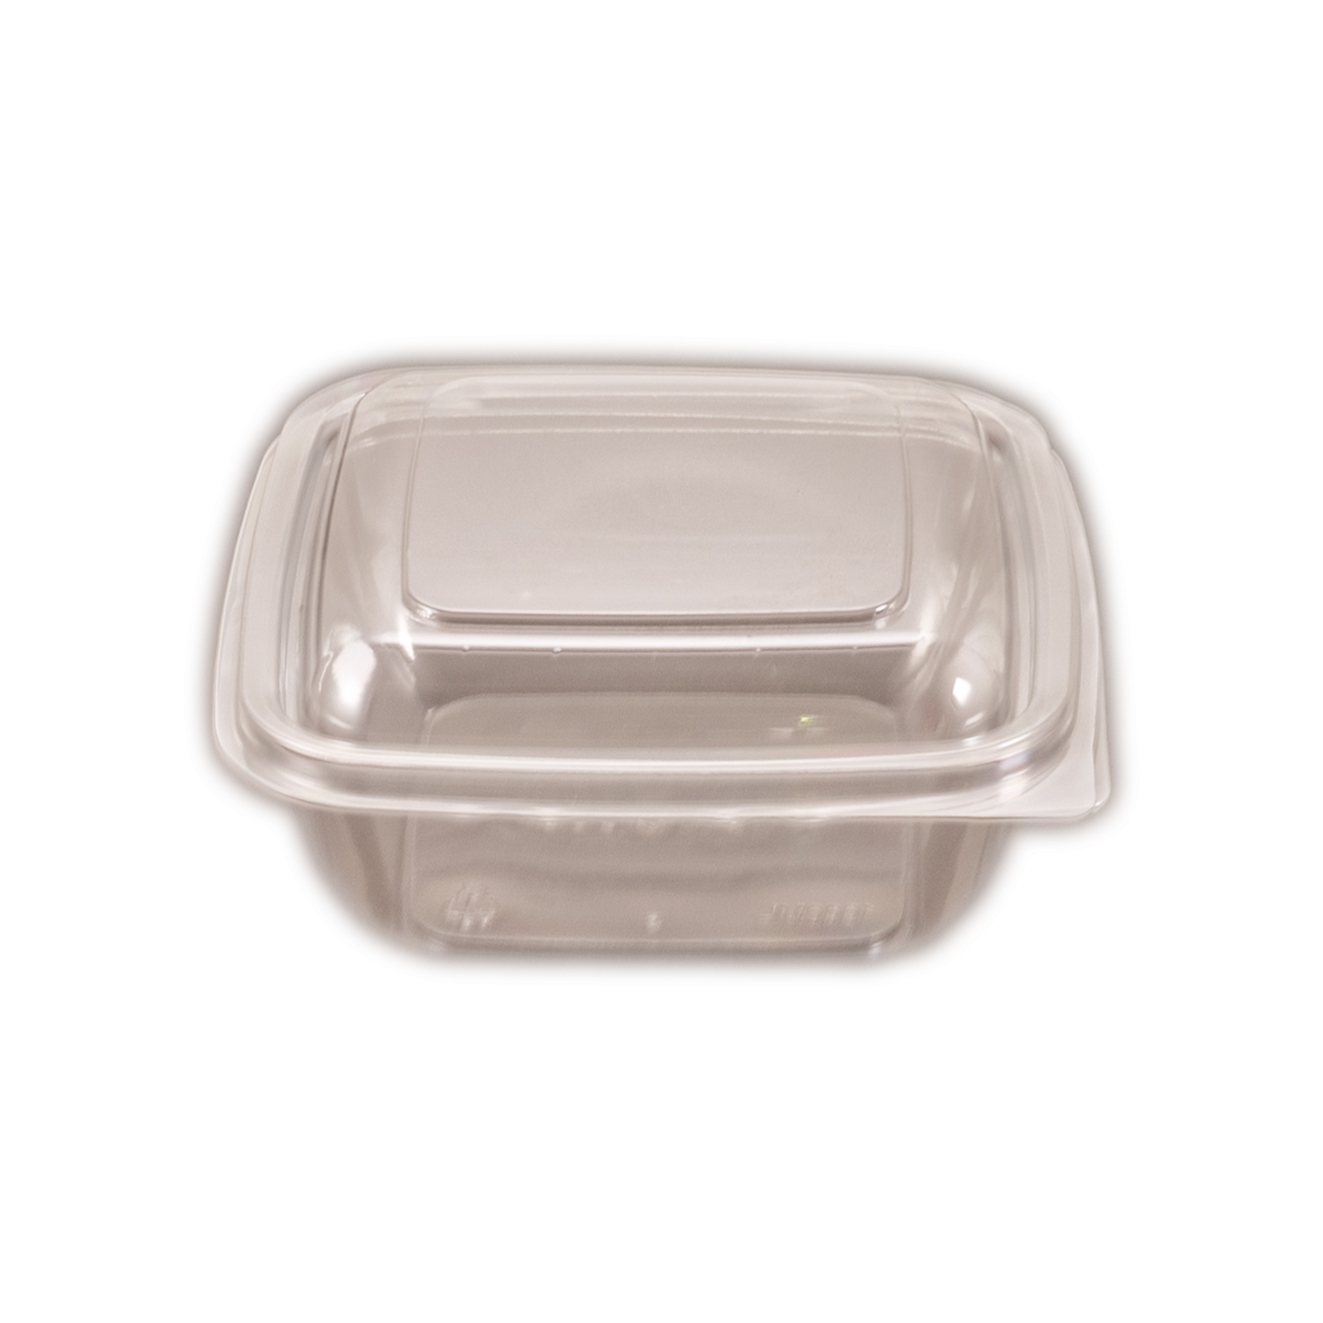 iKCUBE32 Hinged Lid     Containers Square 1000ml 50 per slv 150 per carton